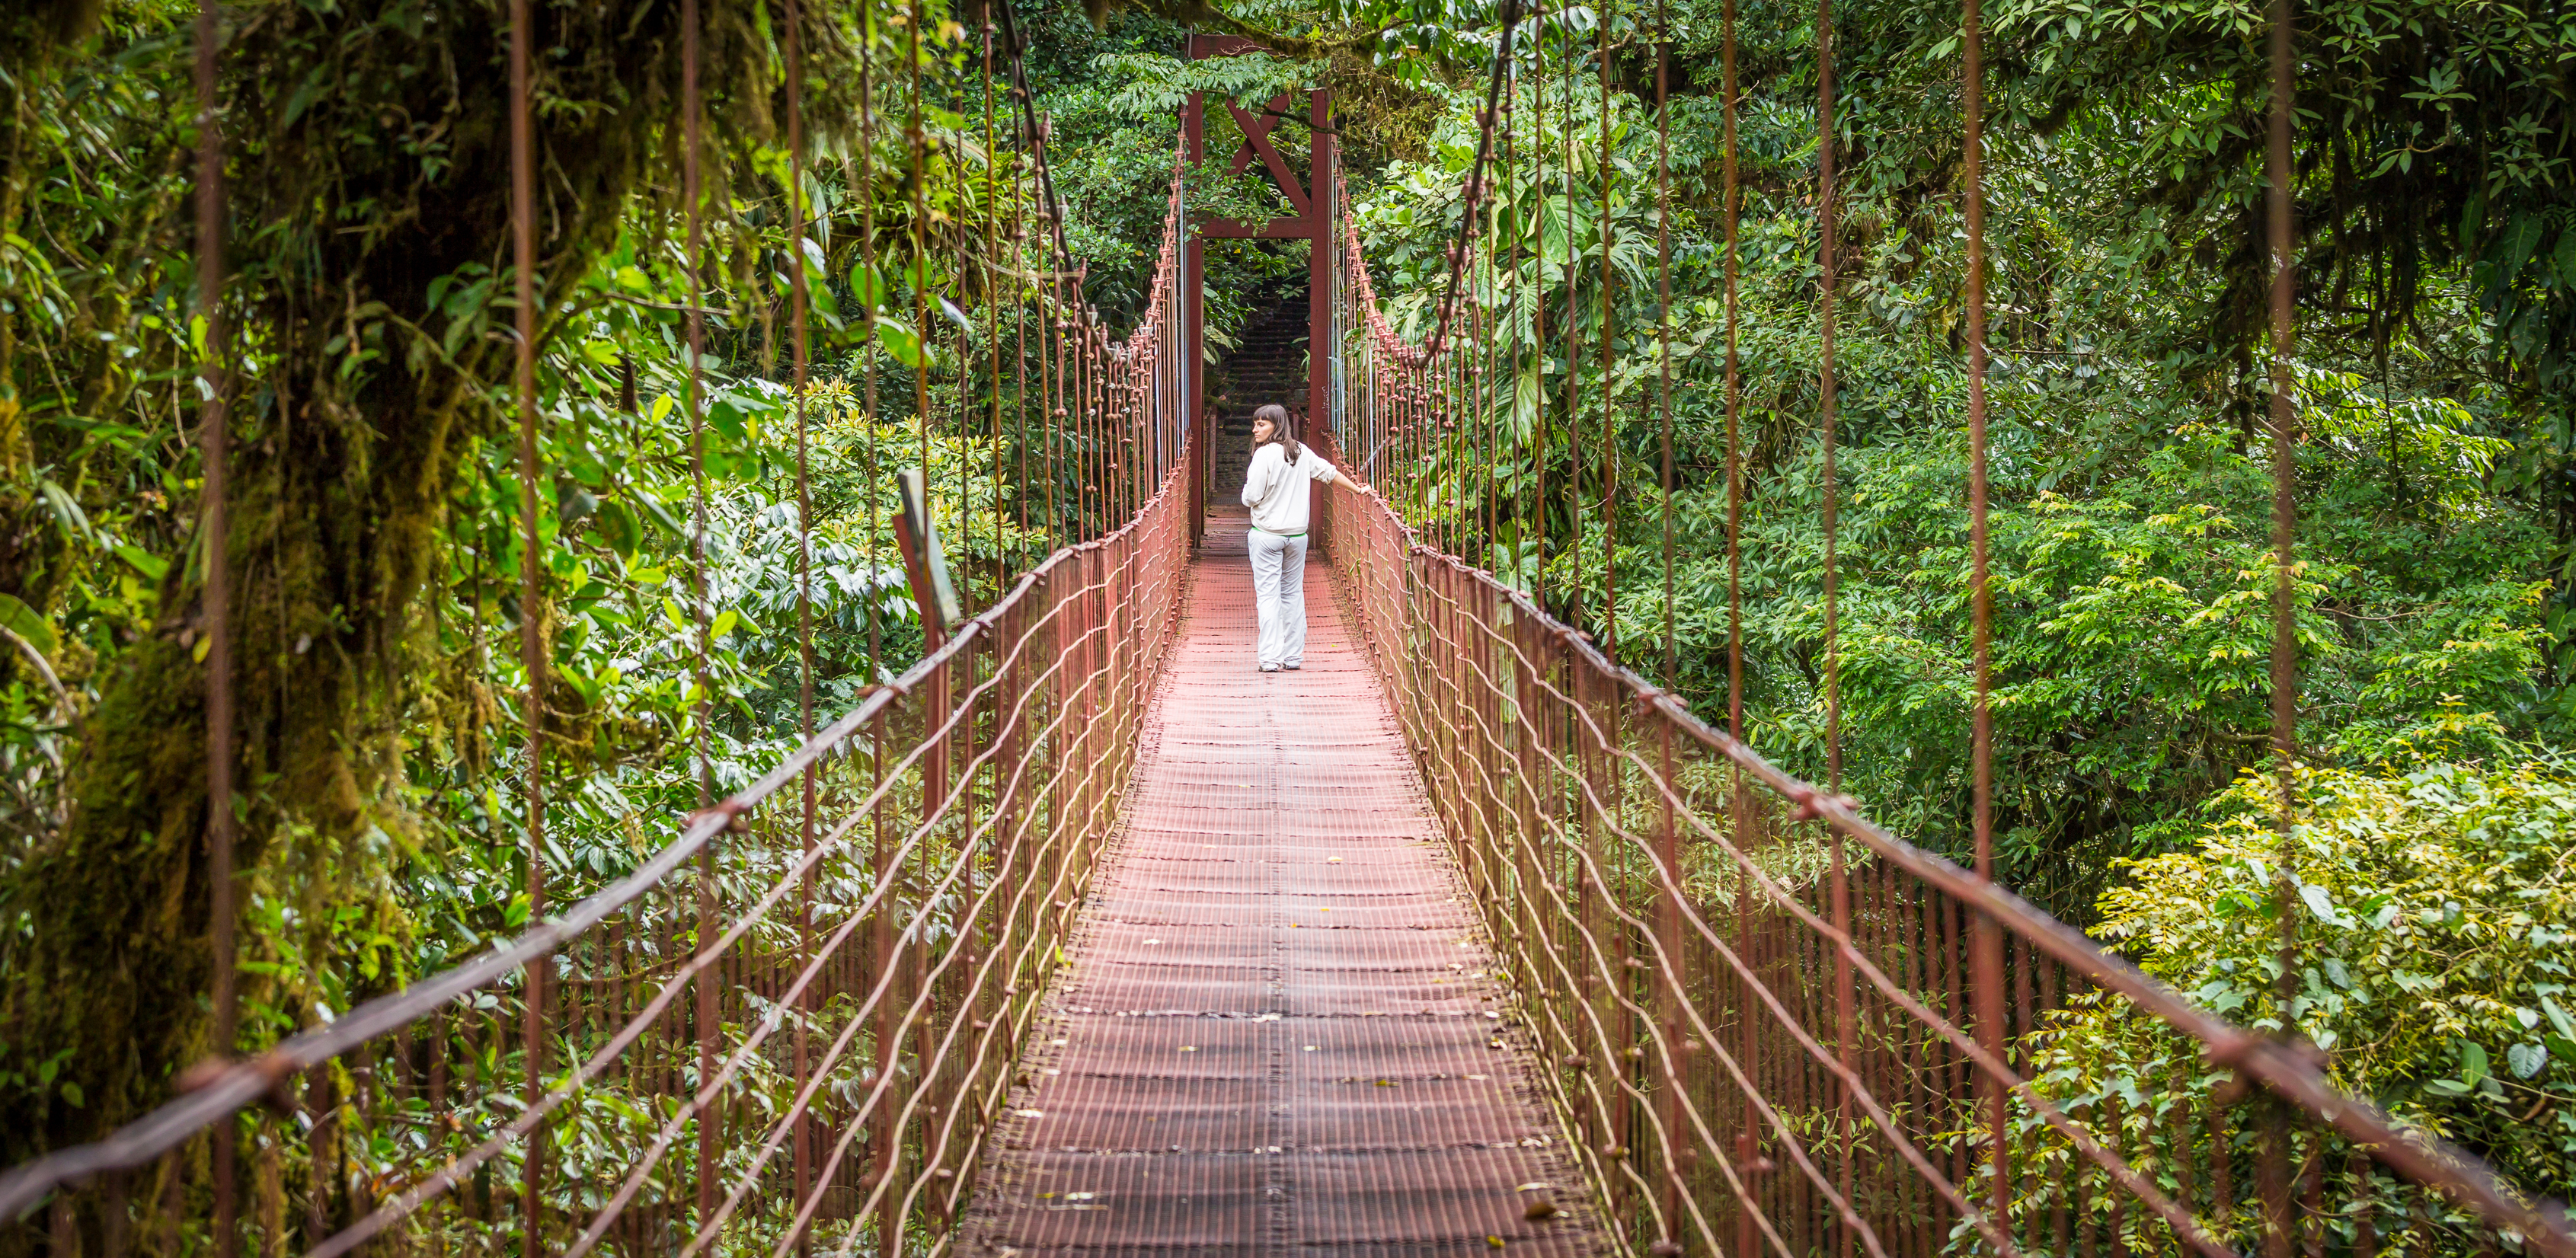 10 Best Things to Do in Costa Rica